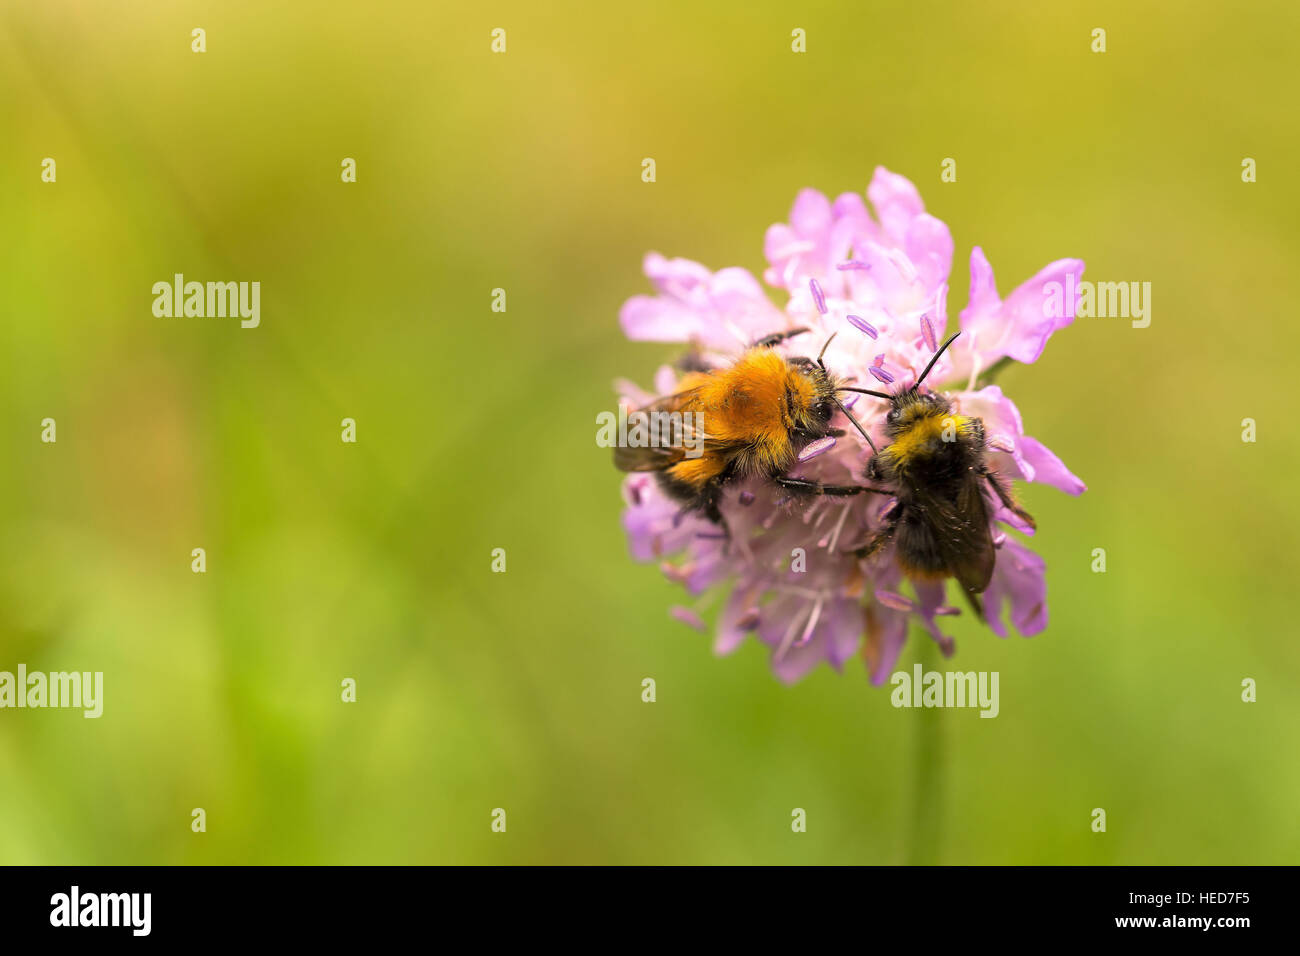 agreement,animal,flower,forest,friendliness,green,high,honey,honey bee,Honey bees,insect,natural,nature,purple,summer,together,wild - Stock Image